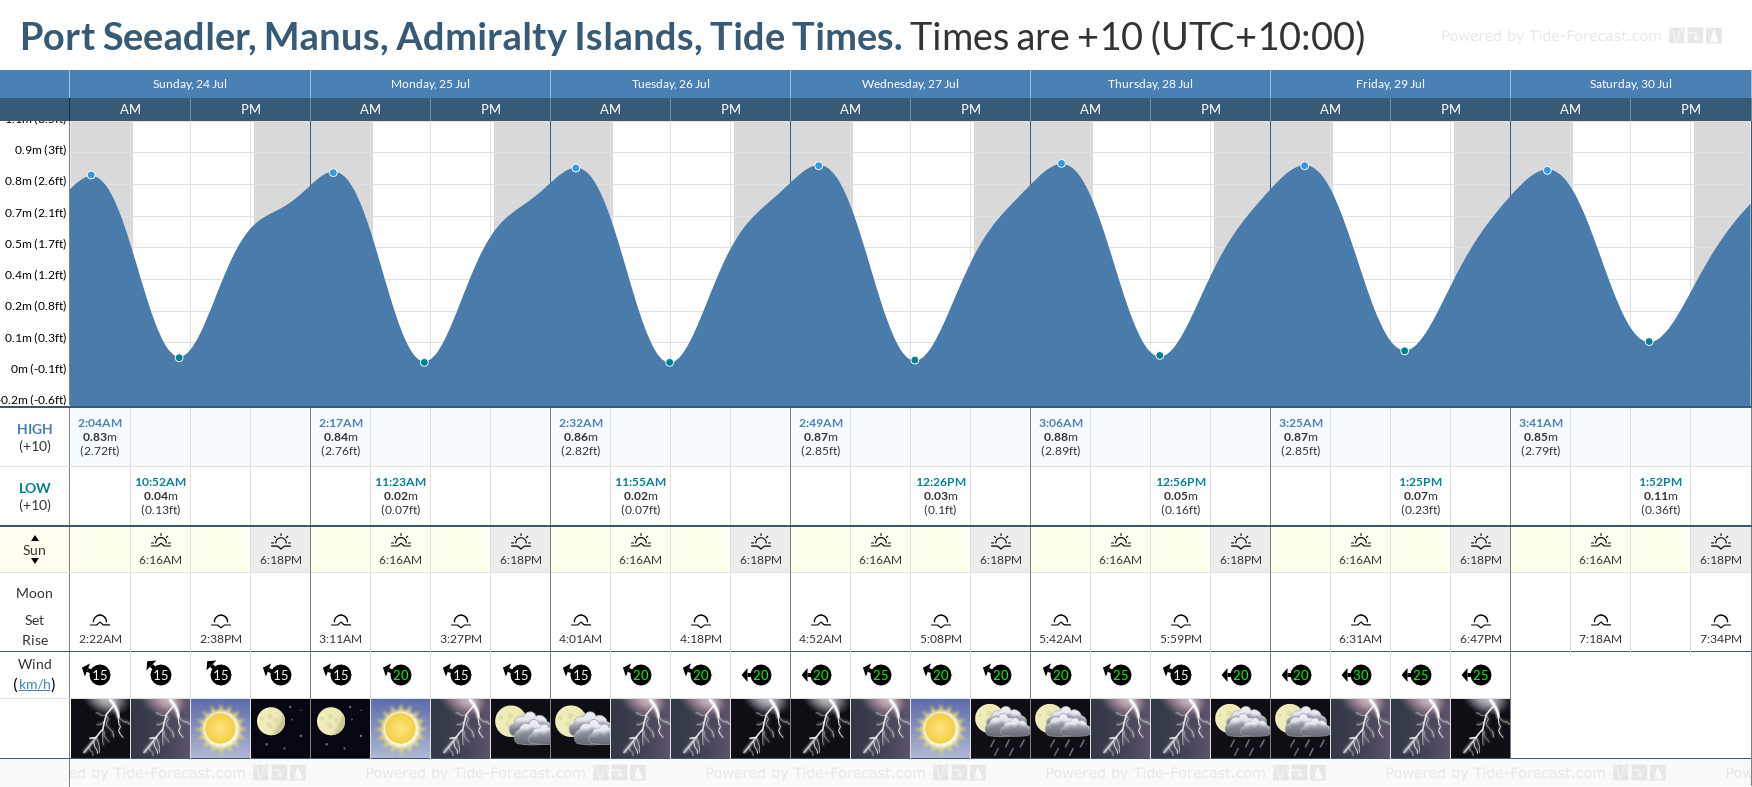 Port Seeadler, Manus, Admiralty Islands Tide Chart including high and low tide tide times for the next 7 days